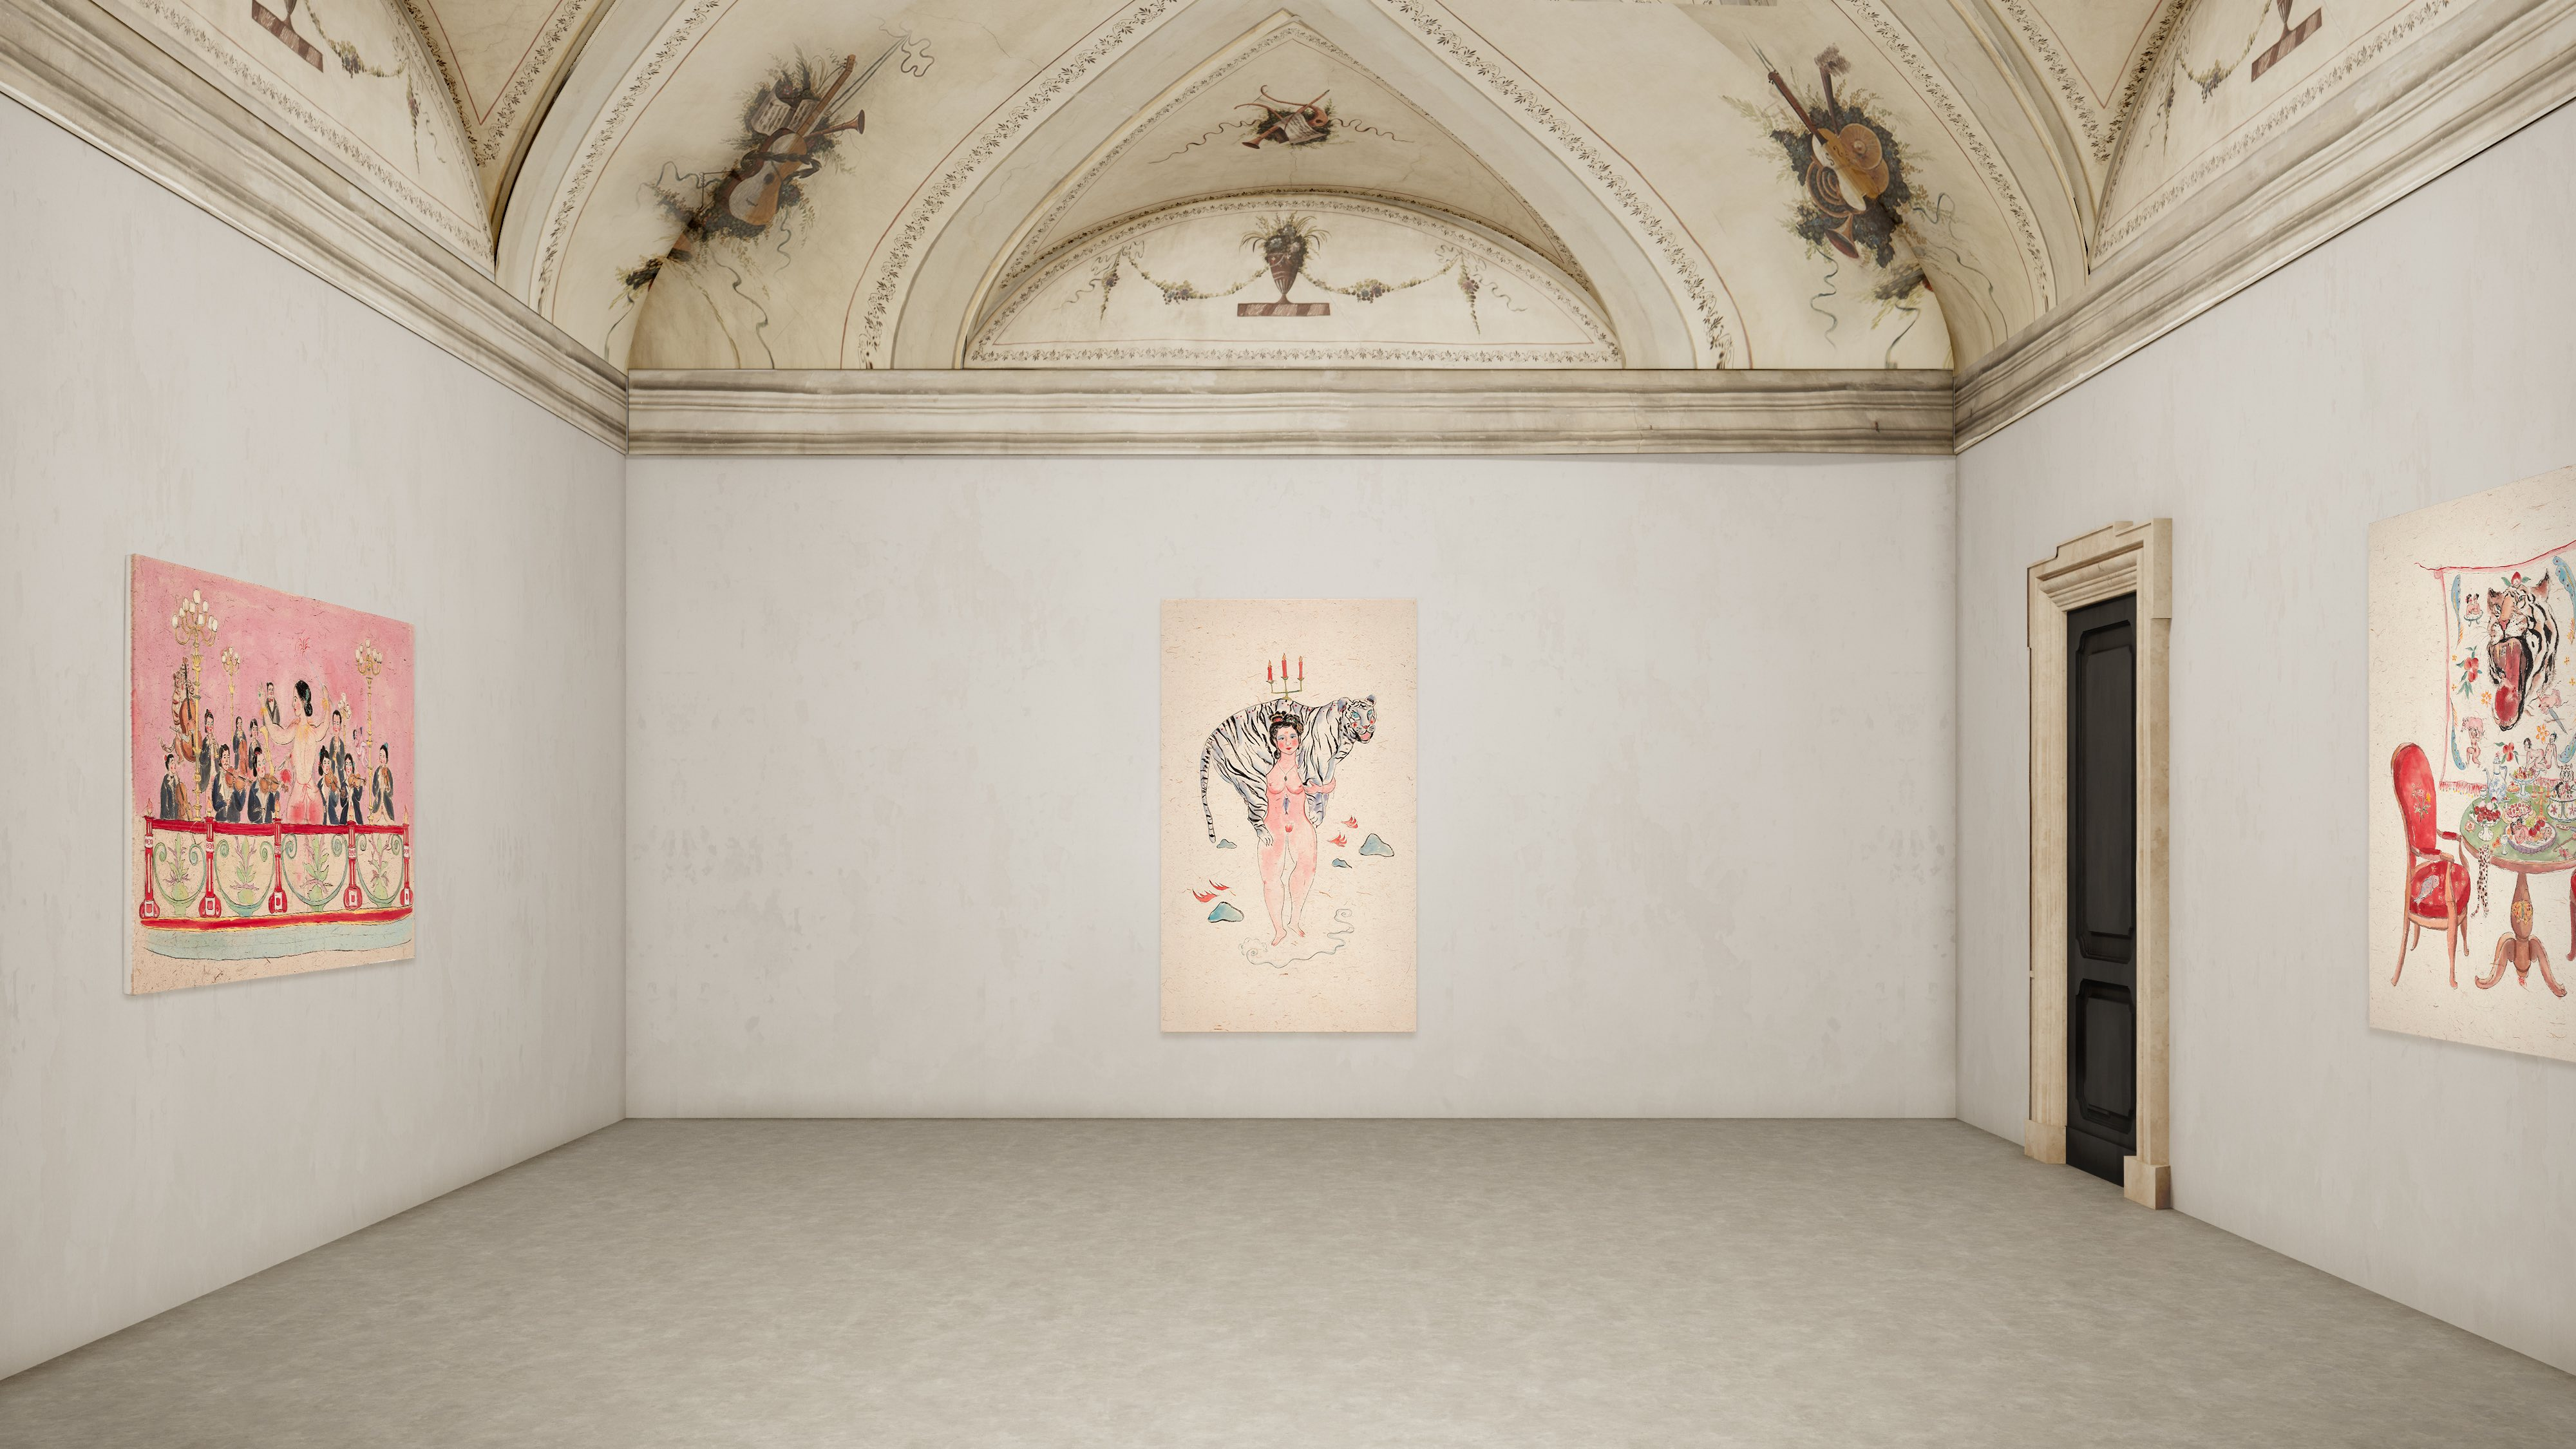 Shafei Xia, Welcome to my show, installation view, Courtesy P420, Bologna